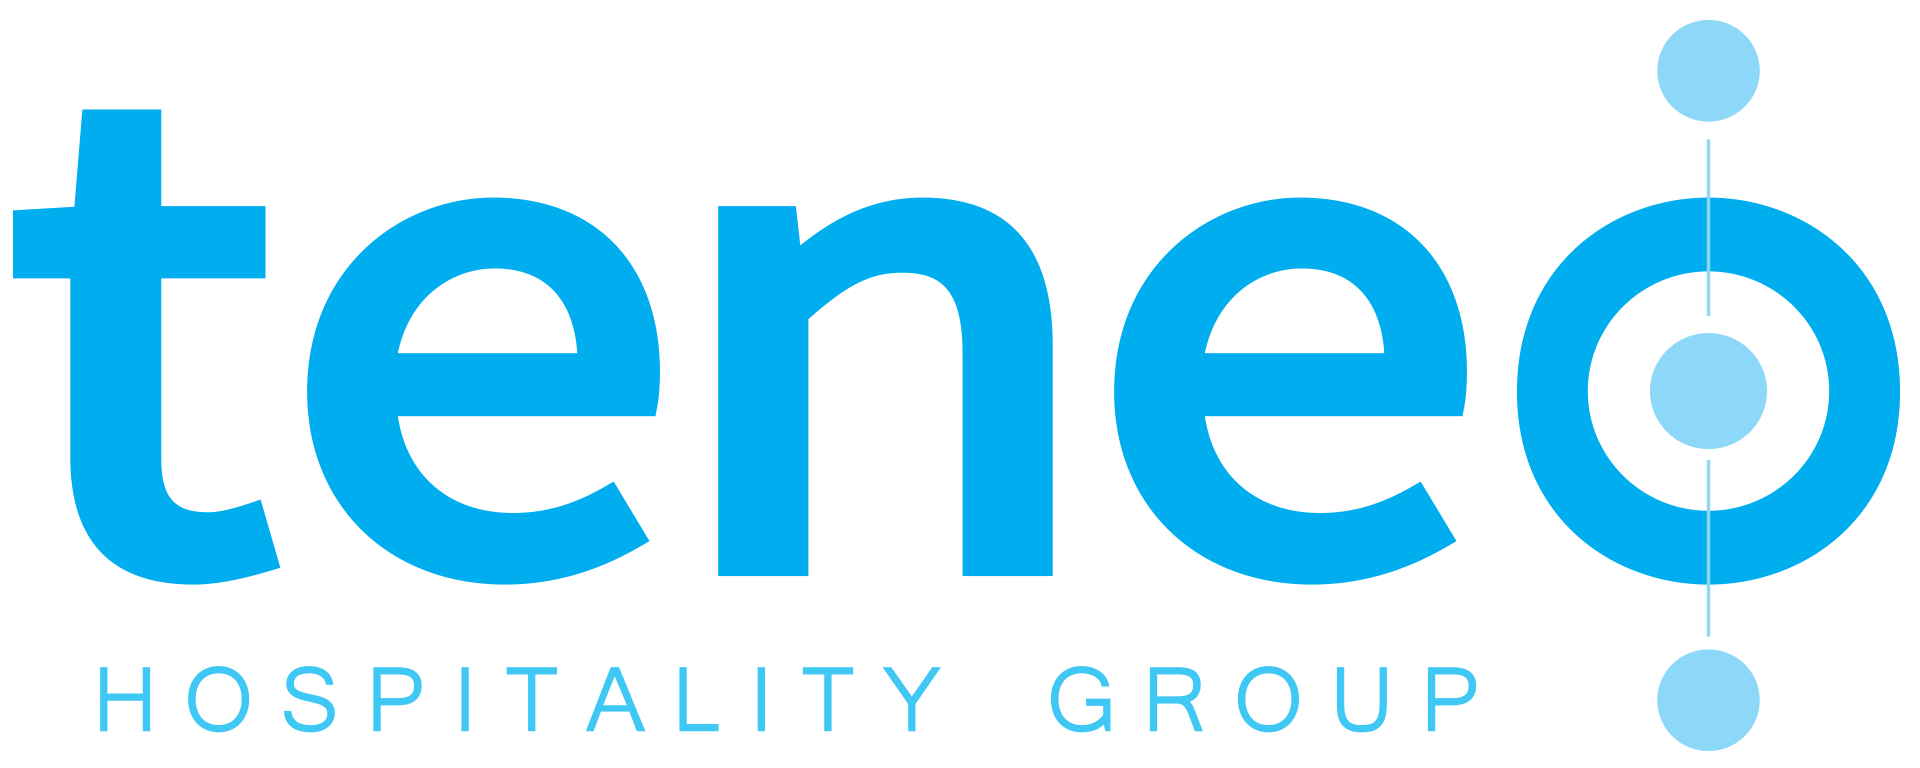 Teneo Hospitality Group